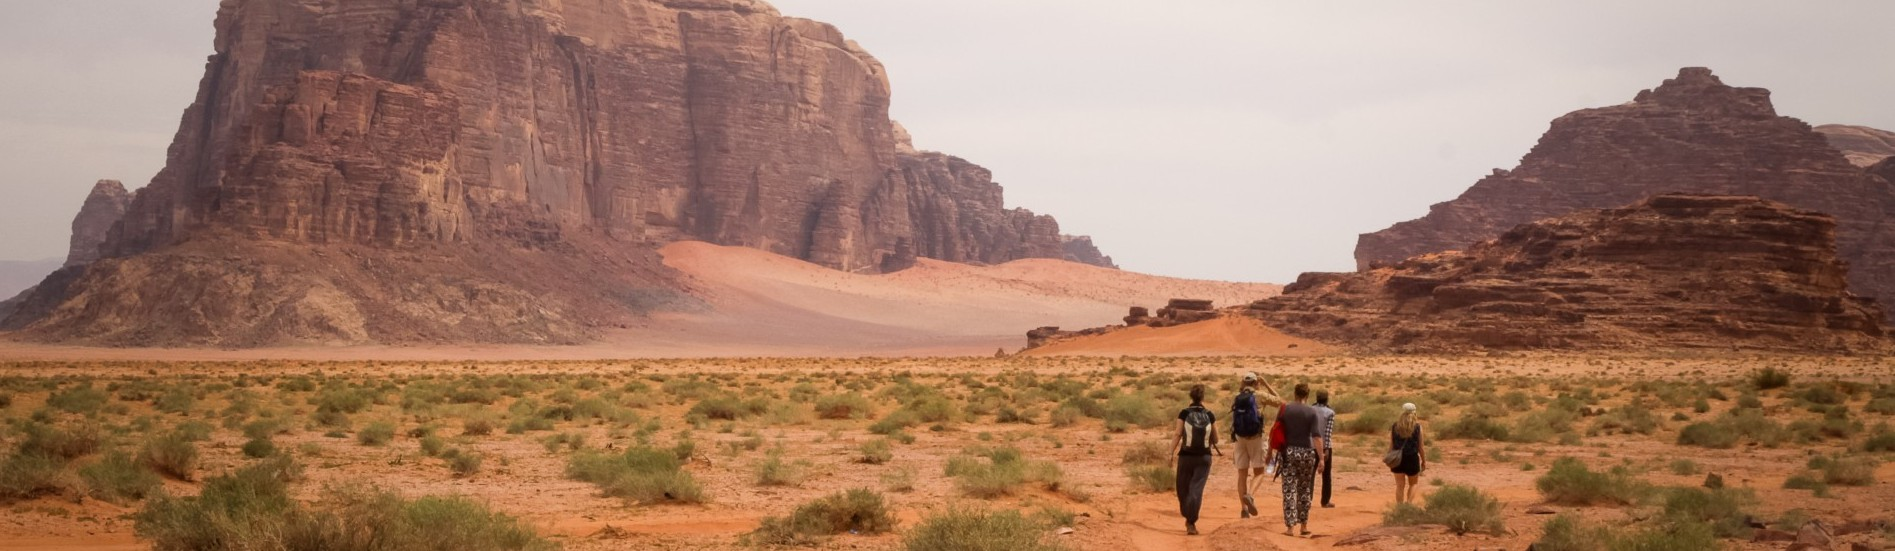 Workshop Mindfulness in Jordanie; Petra, Dana, Wadi Rum woestijn